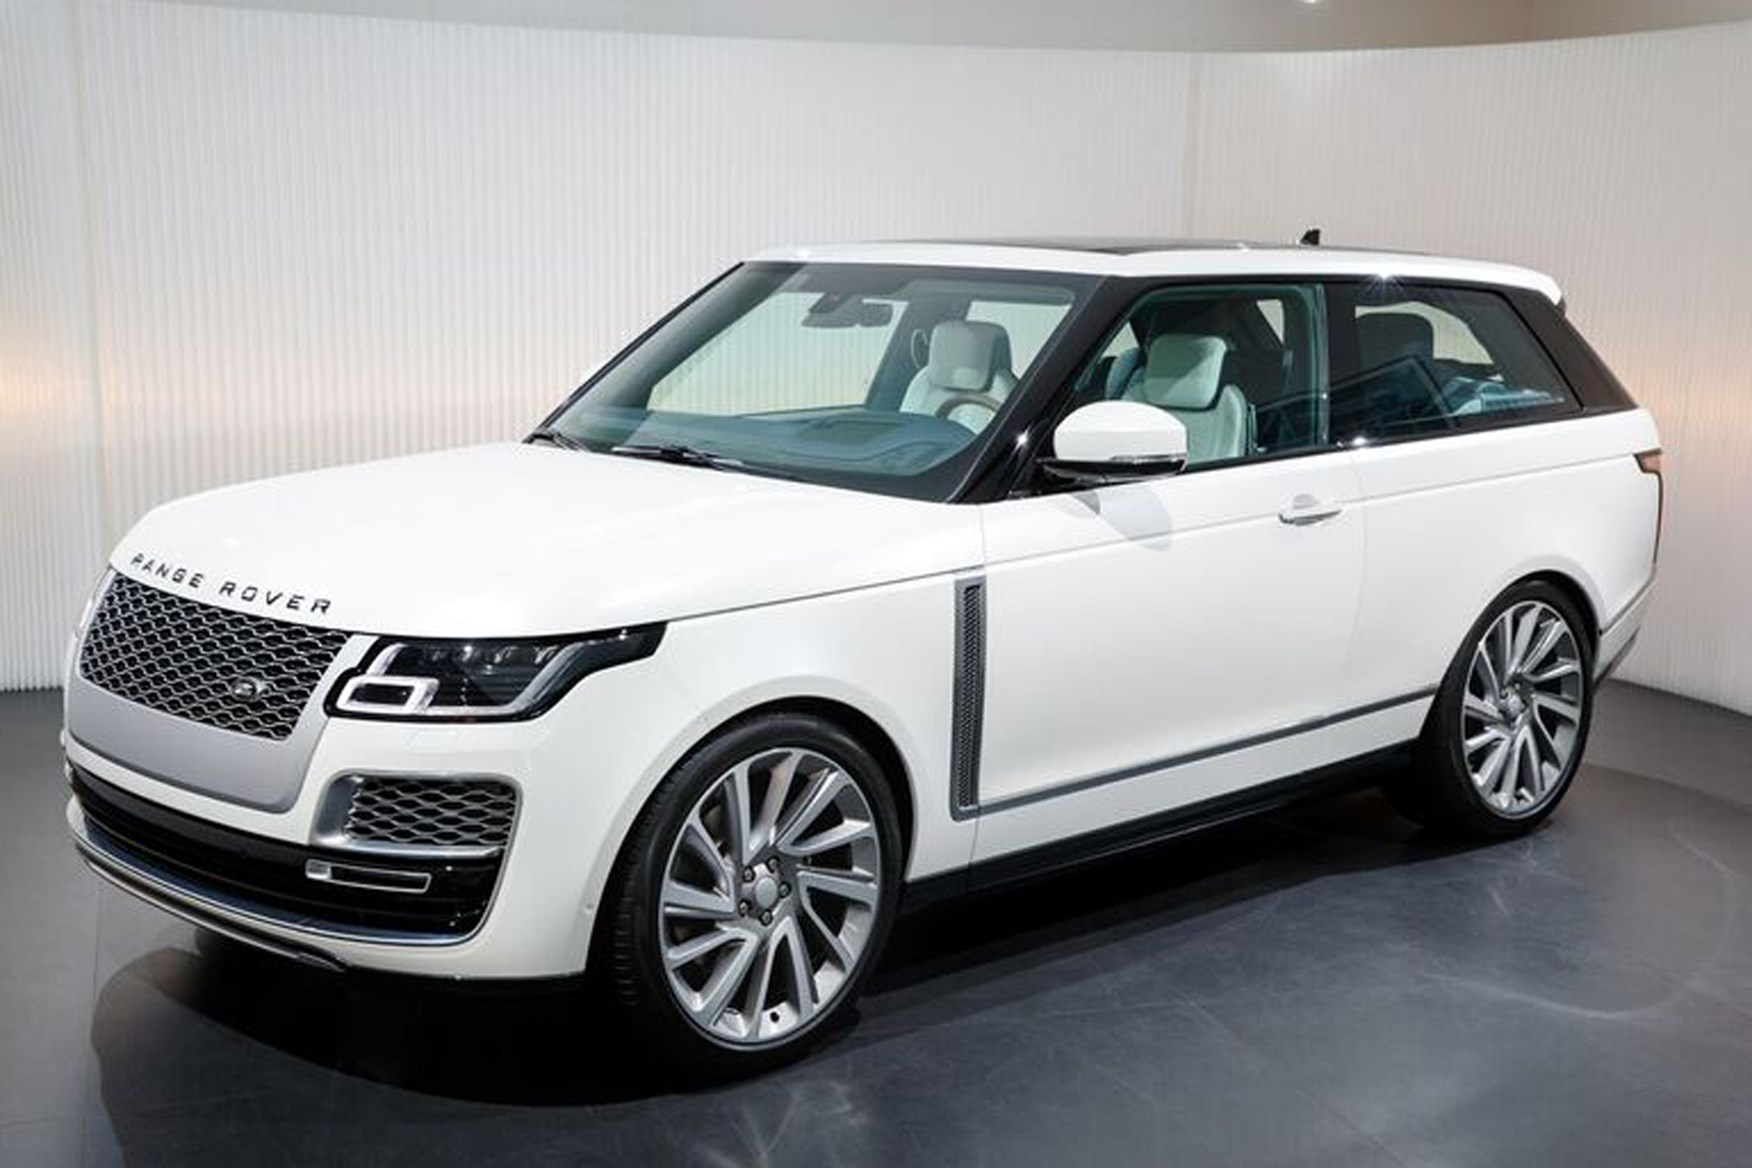 New Range Rover Sv Coupe News Pictures Specs Prices